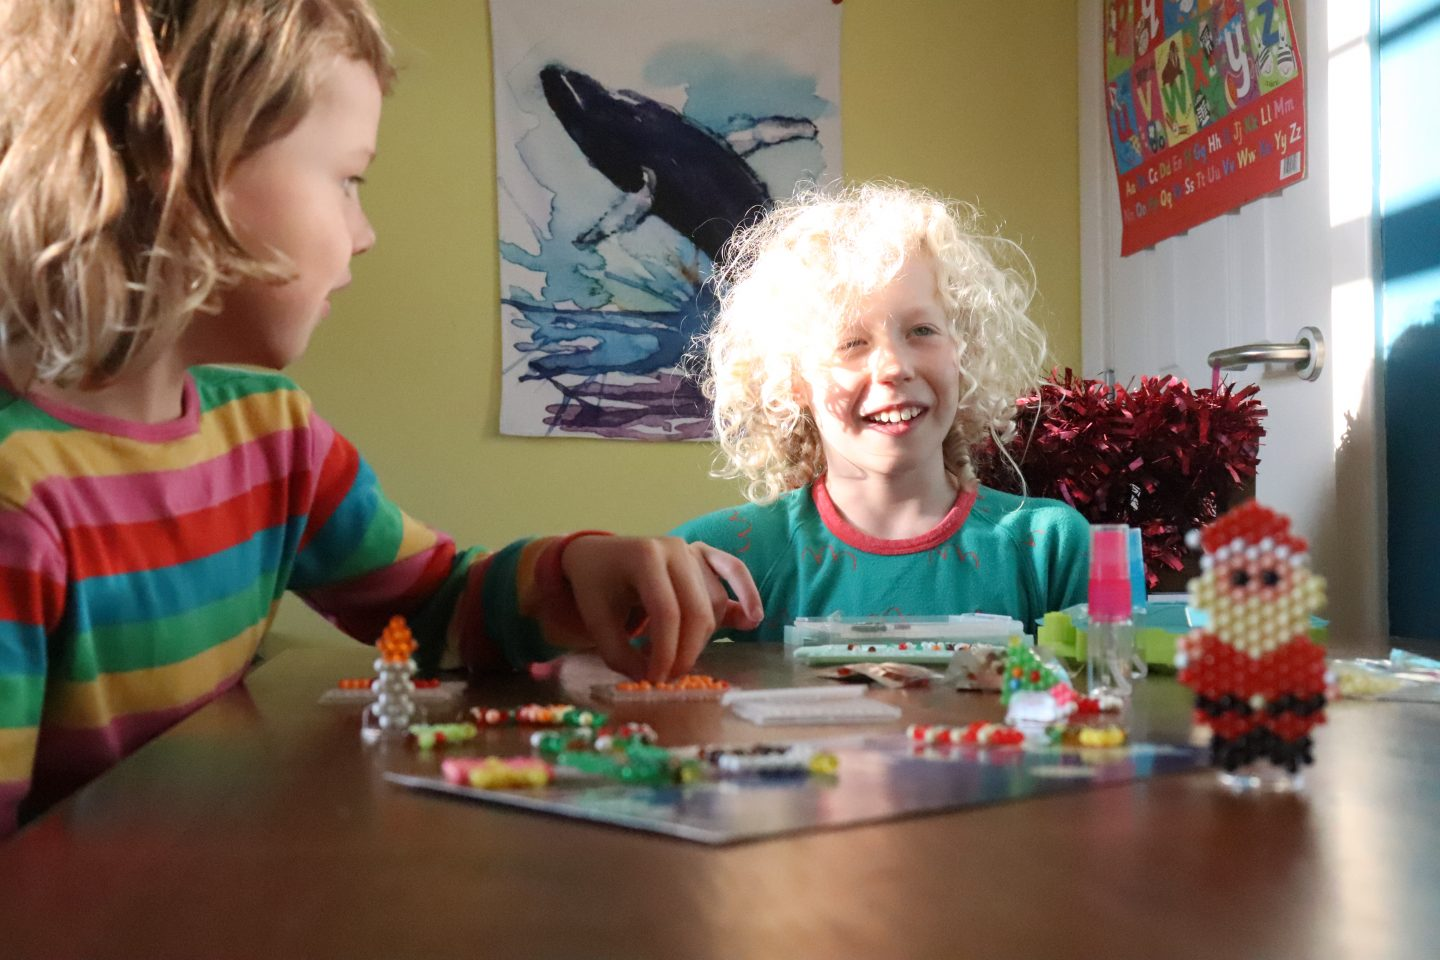 children crafting at the table